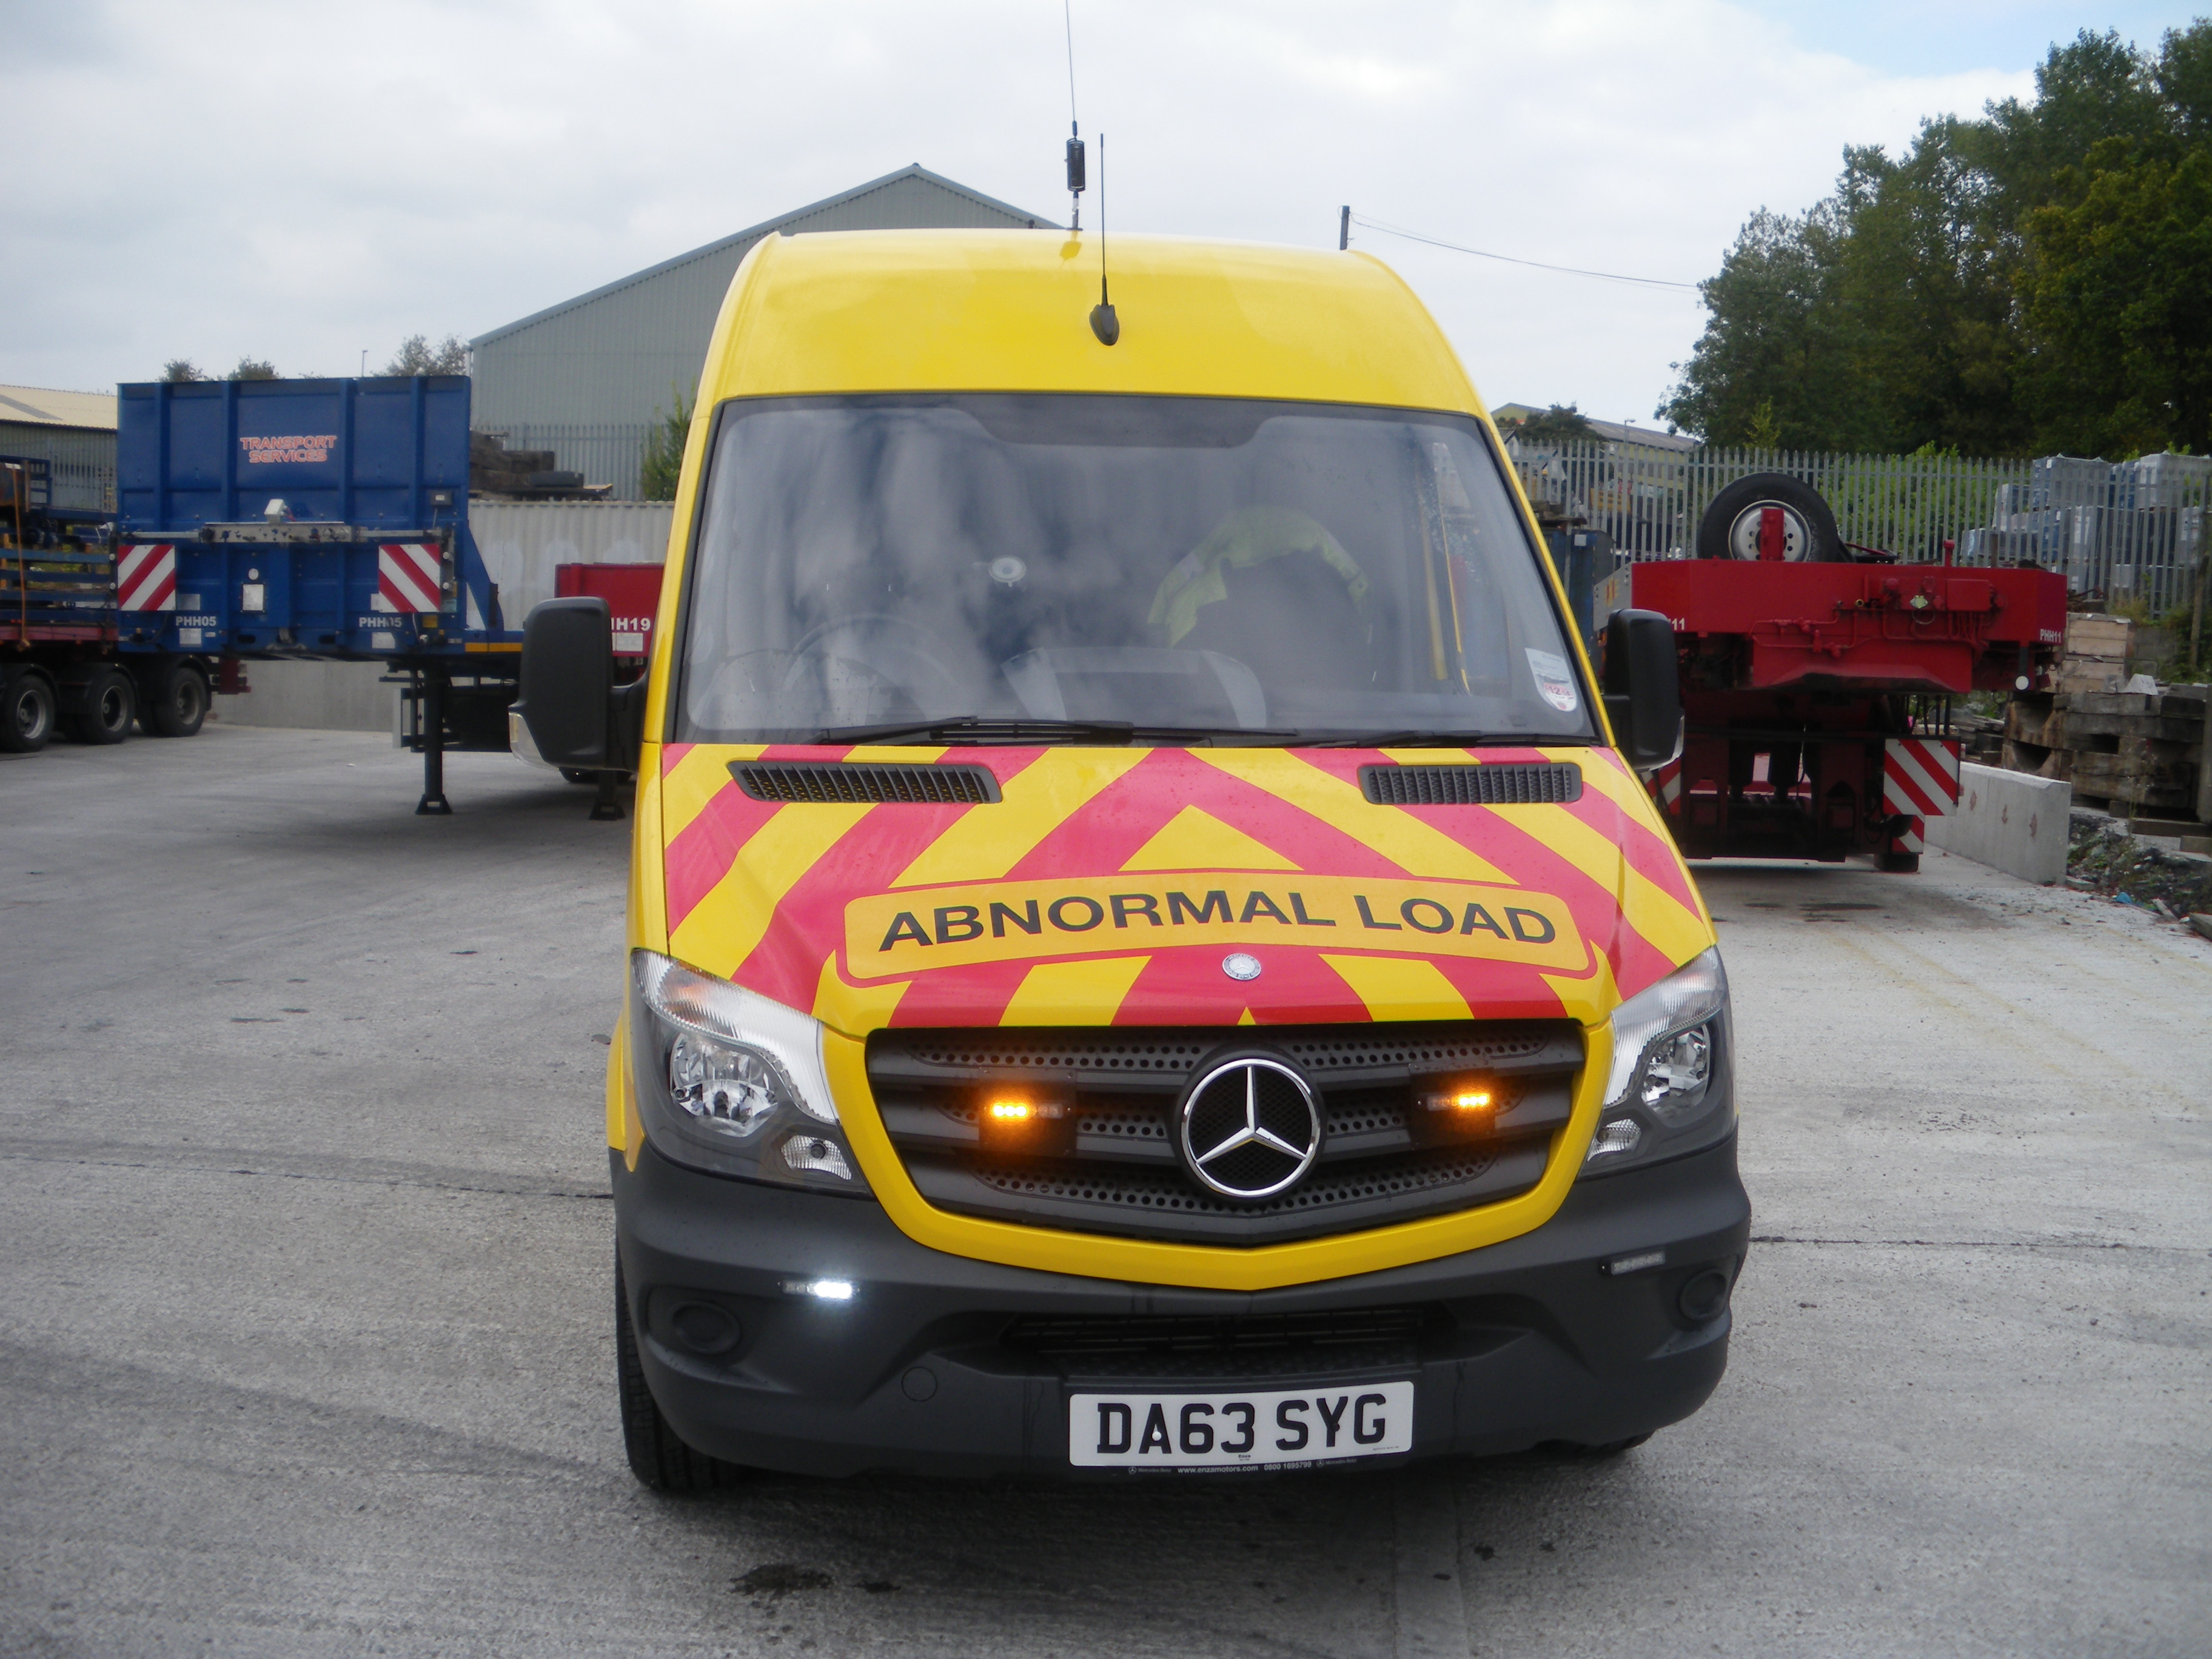 Escort Vehicles for Abnormal Loads - Potteries Heavy Haulage